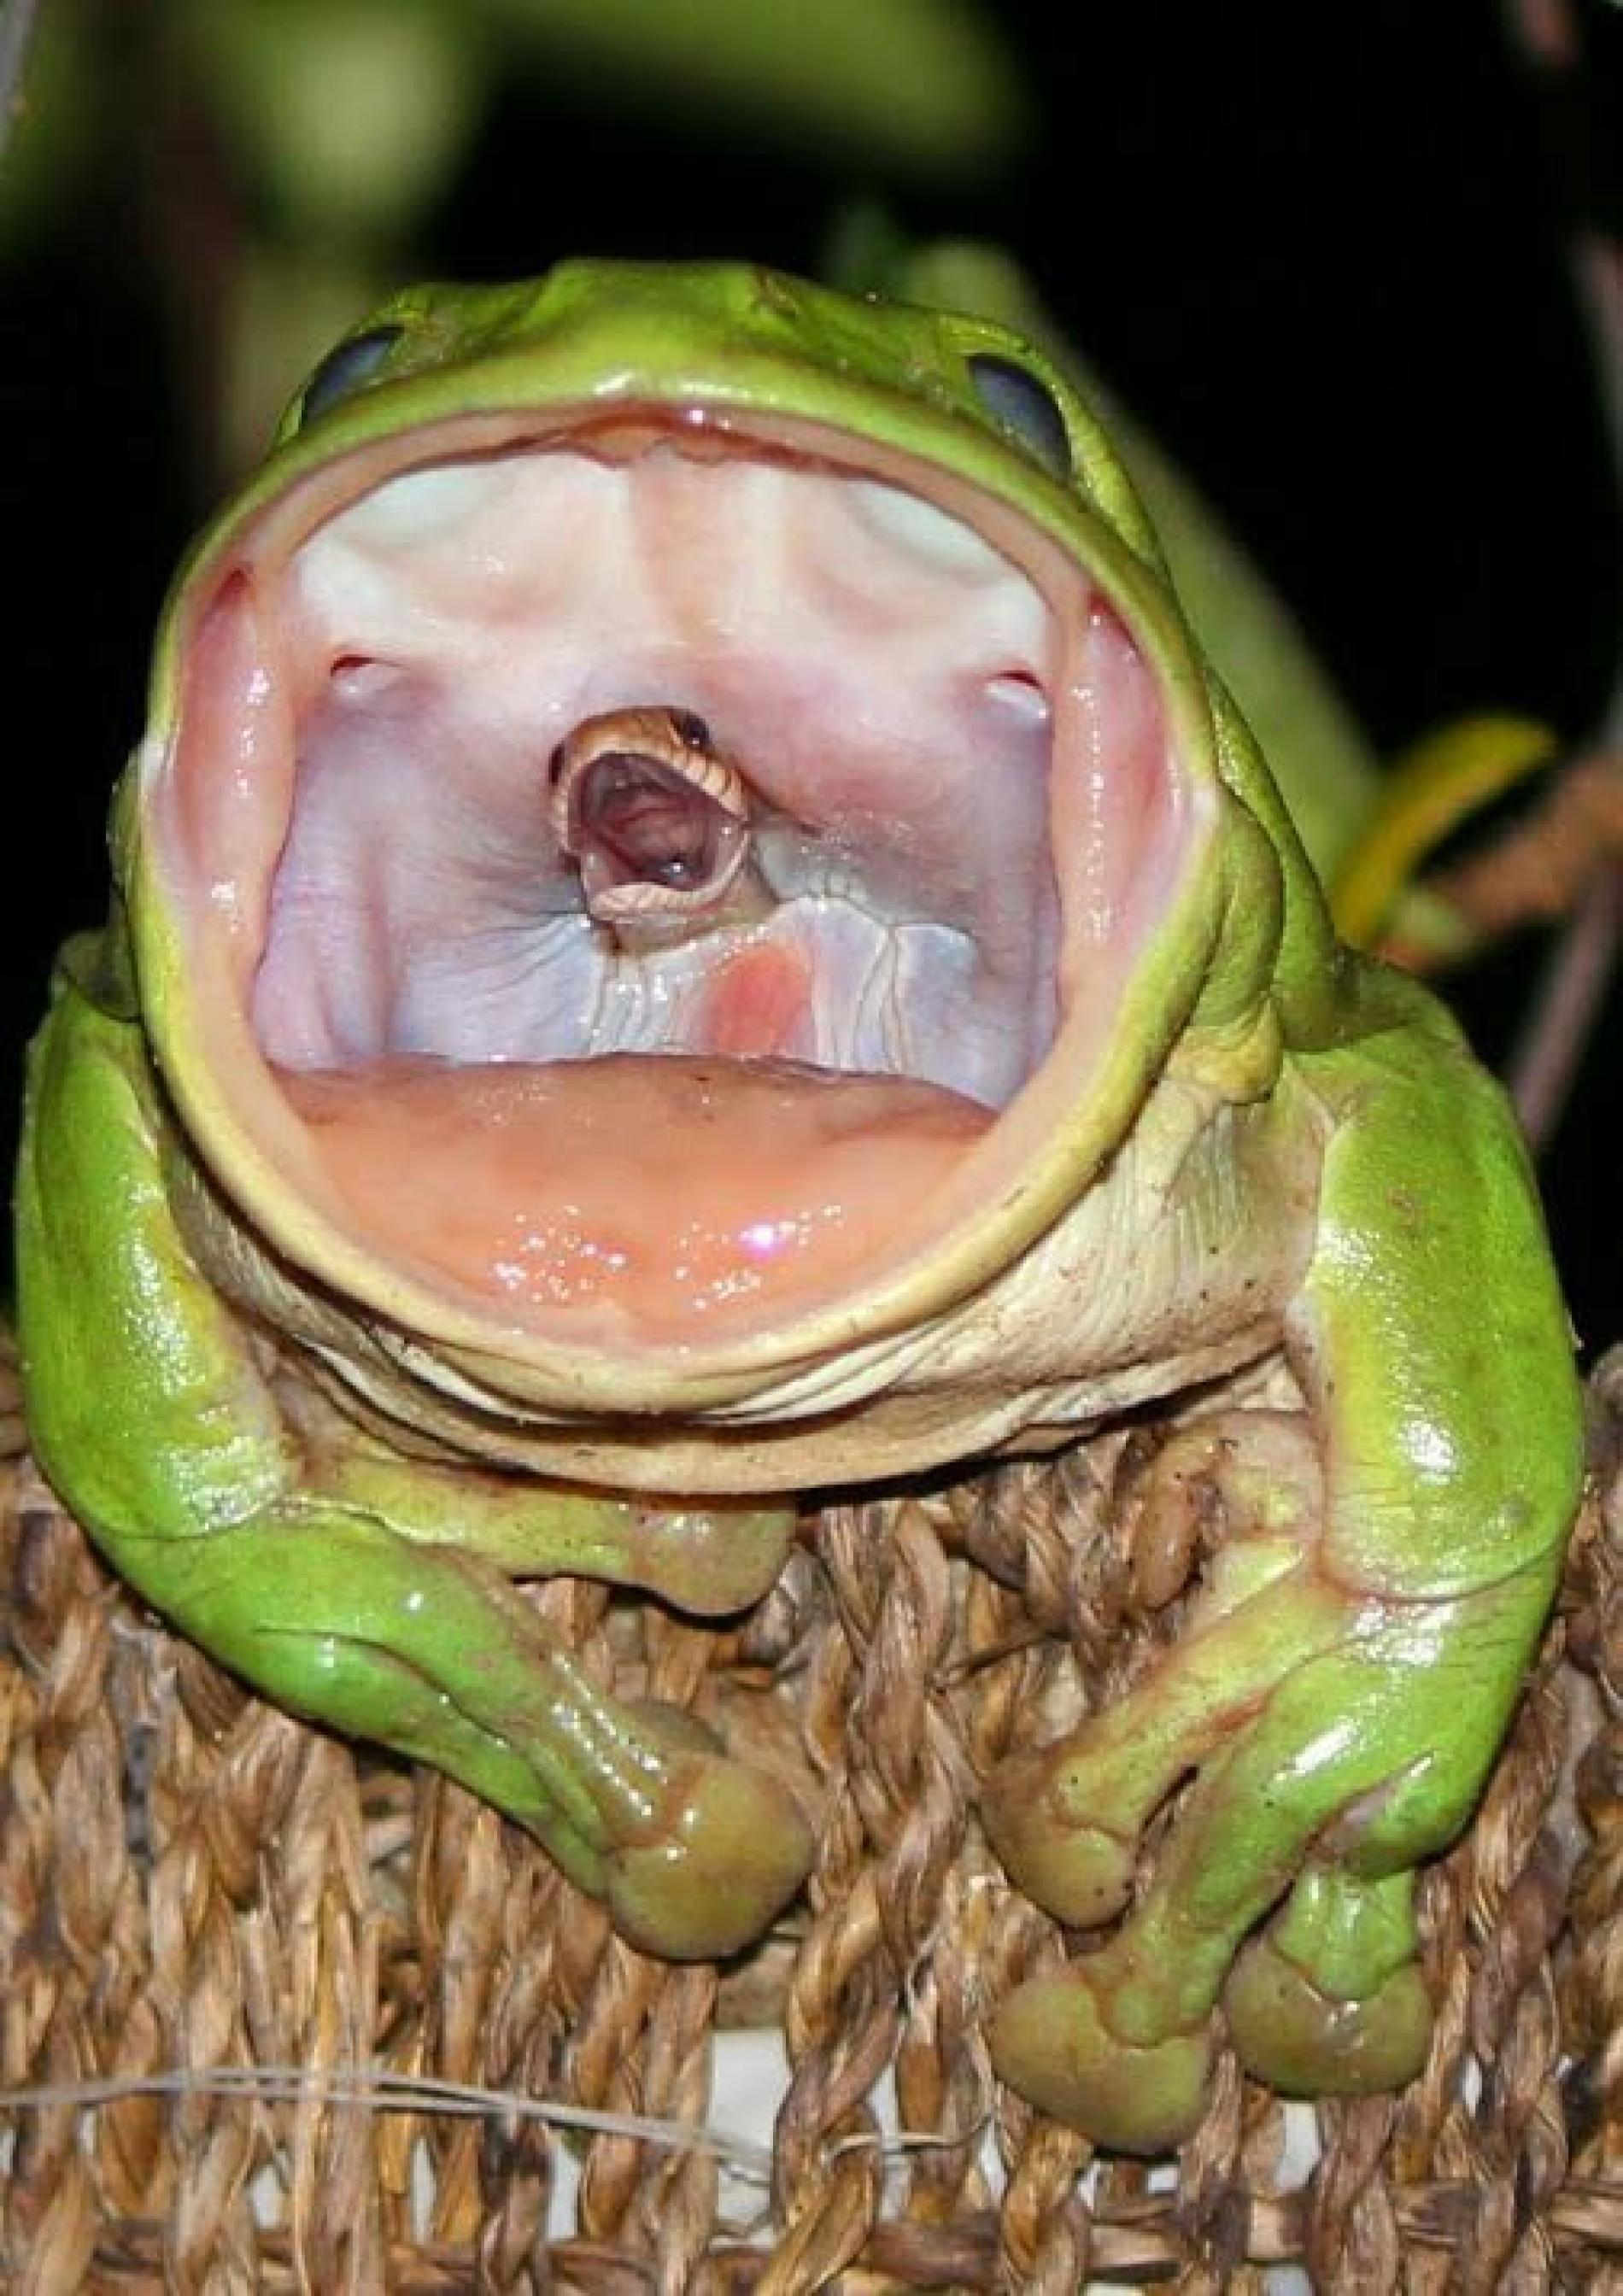 Frog Swallowing Snake